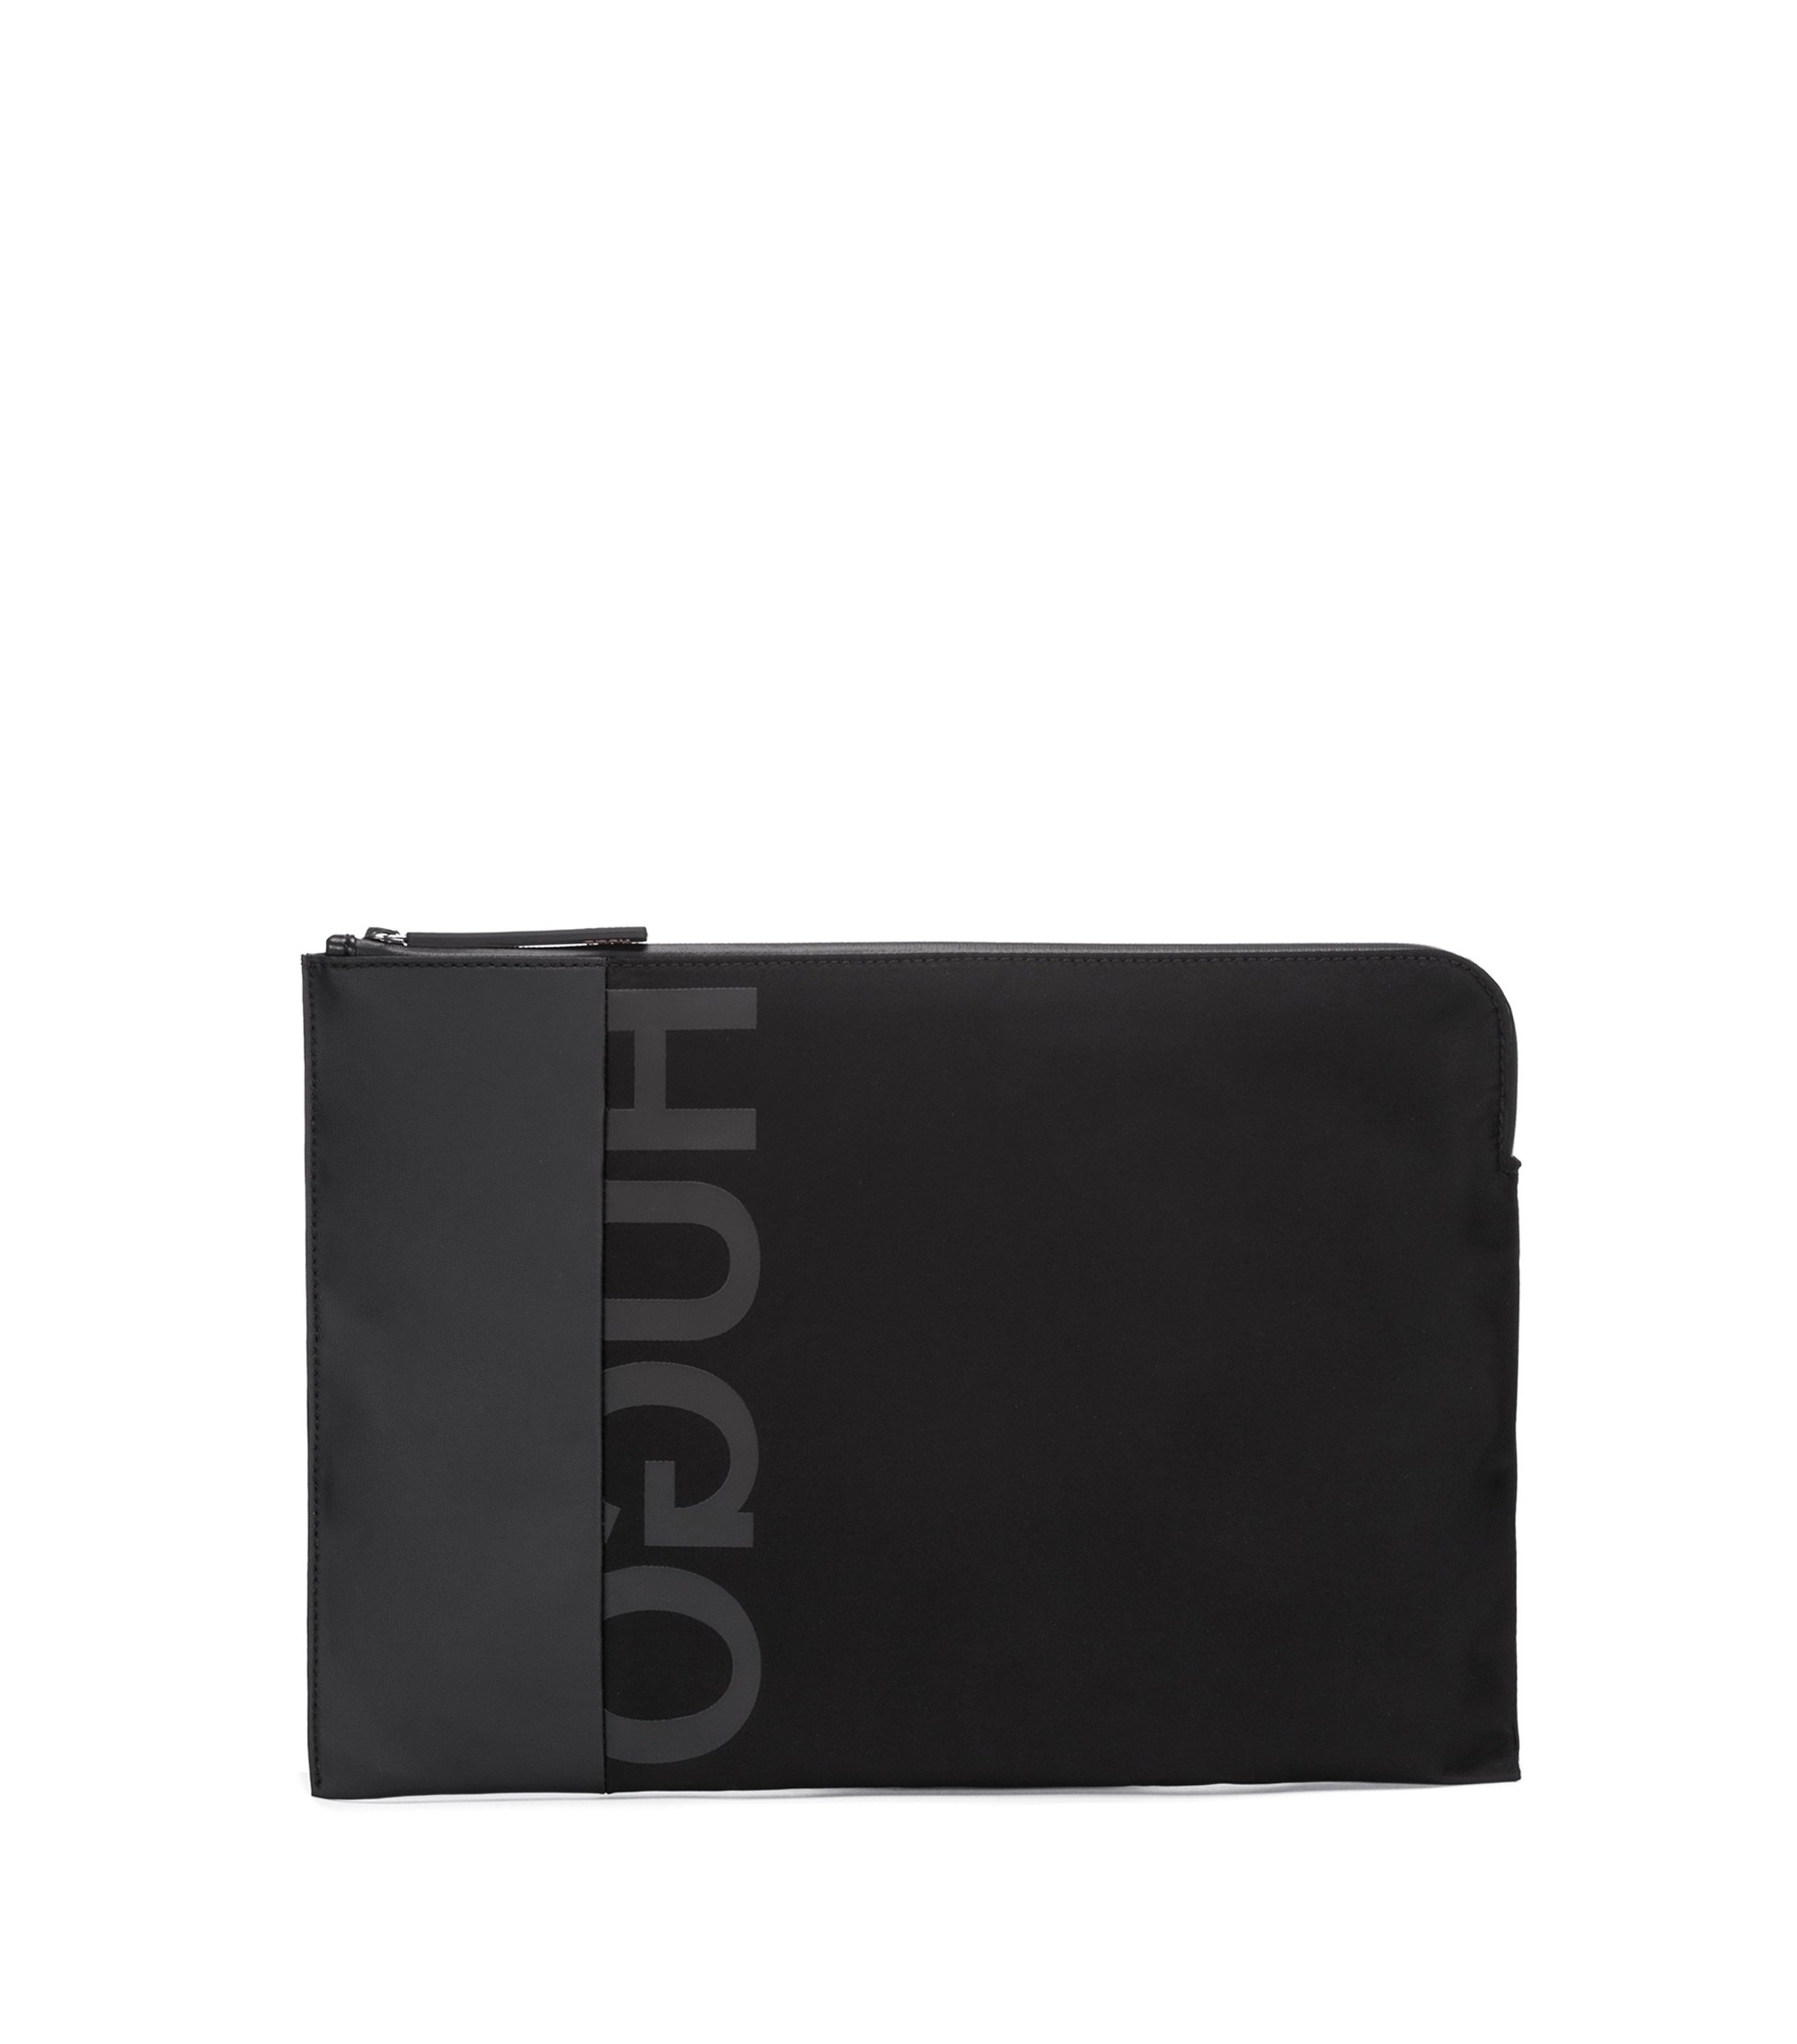 Gabardine portfolio case with reverse logo and gunmetal hardware, Black